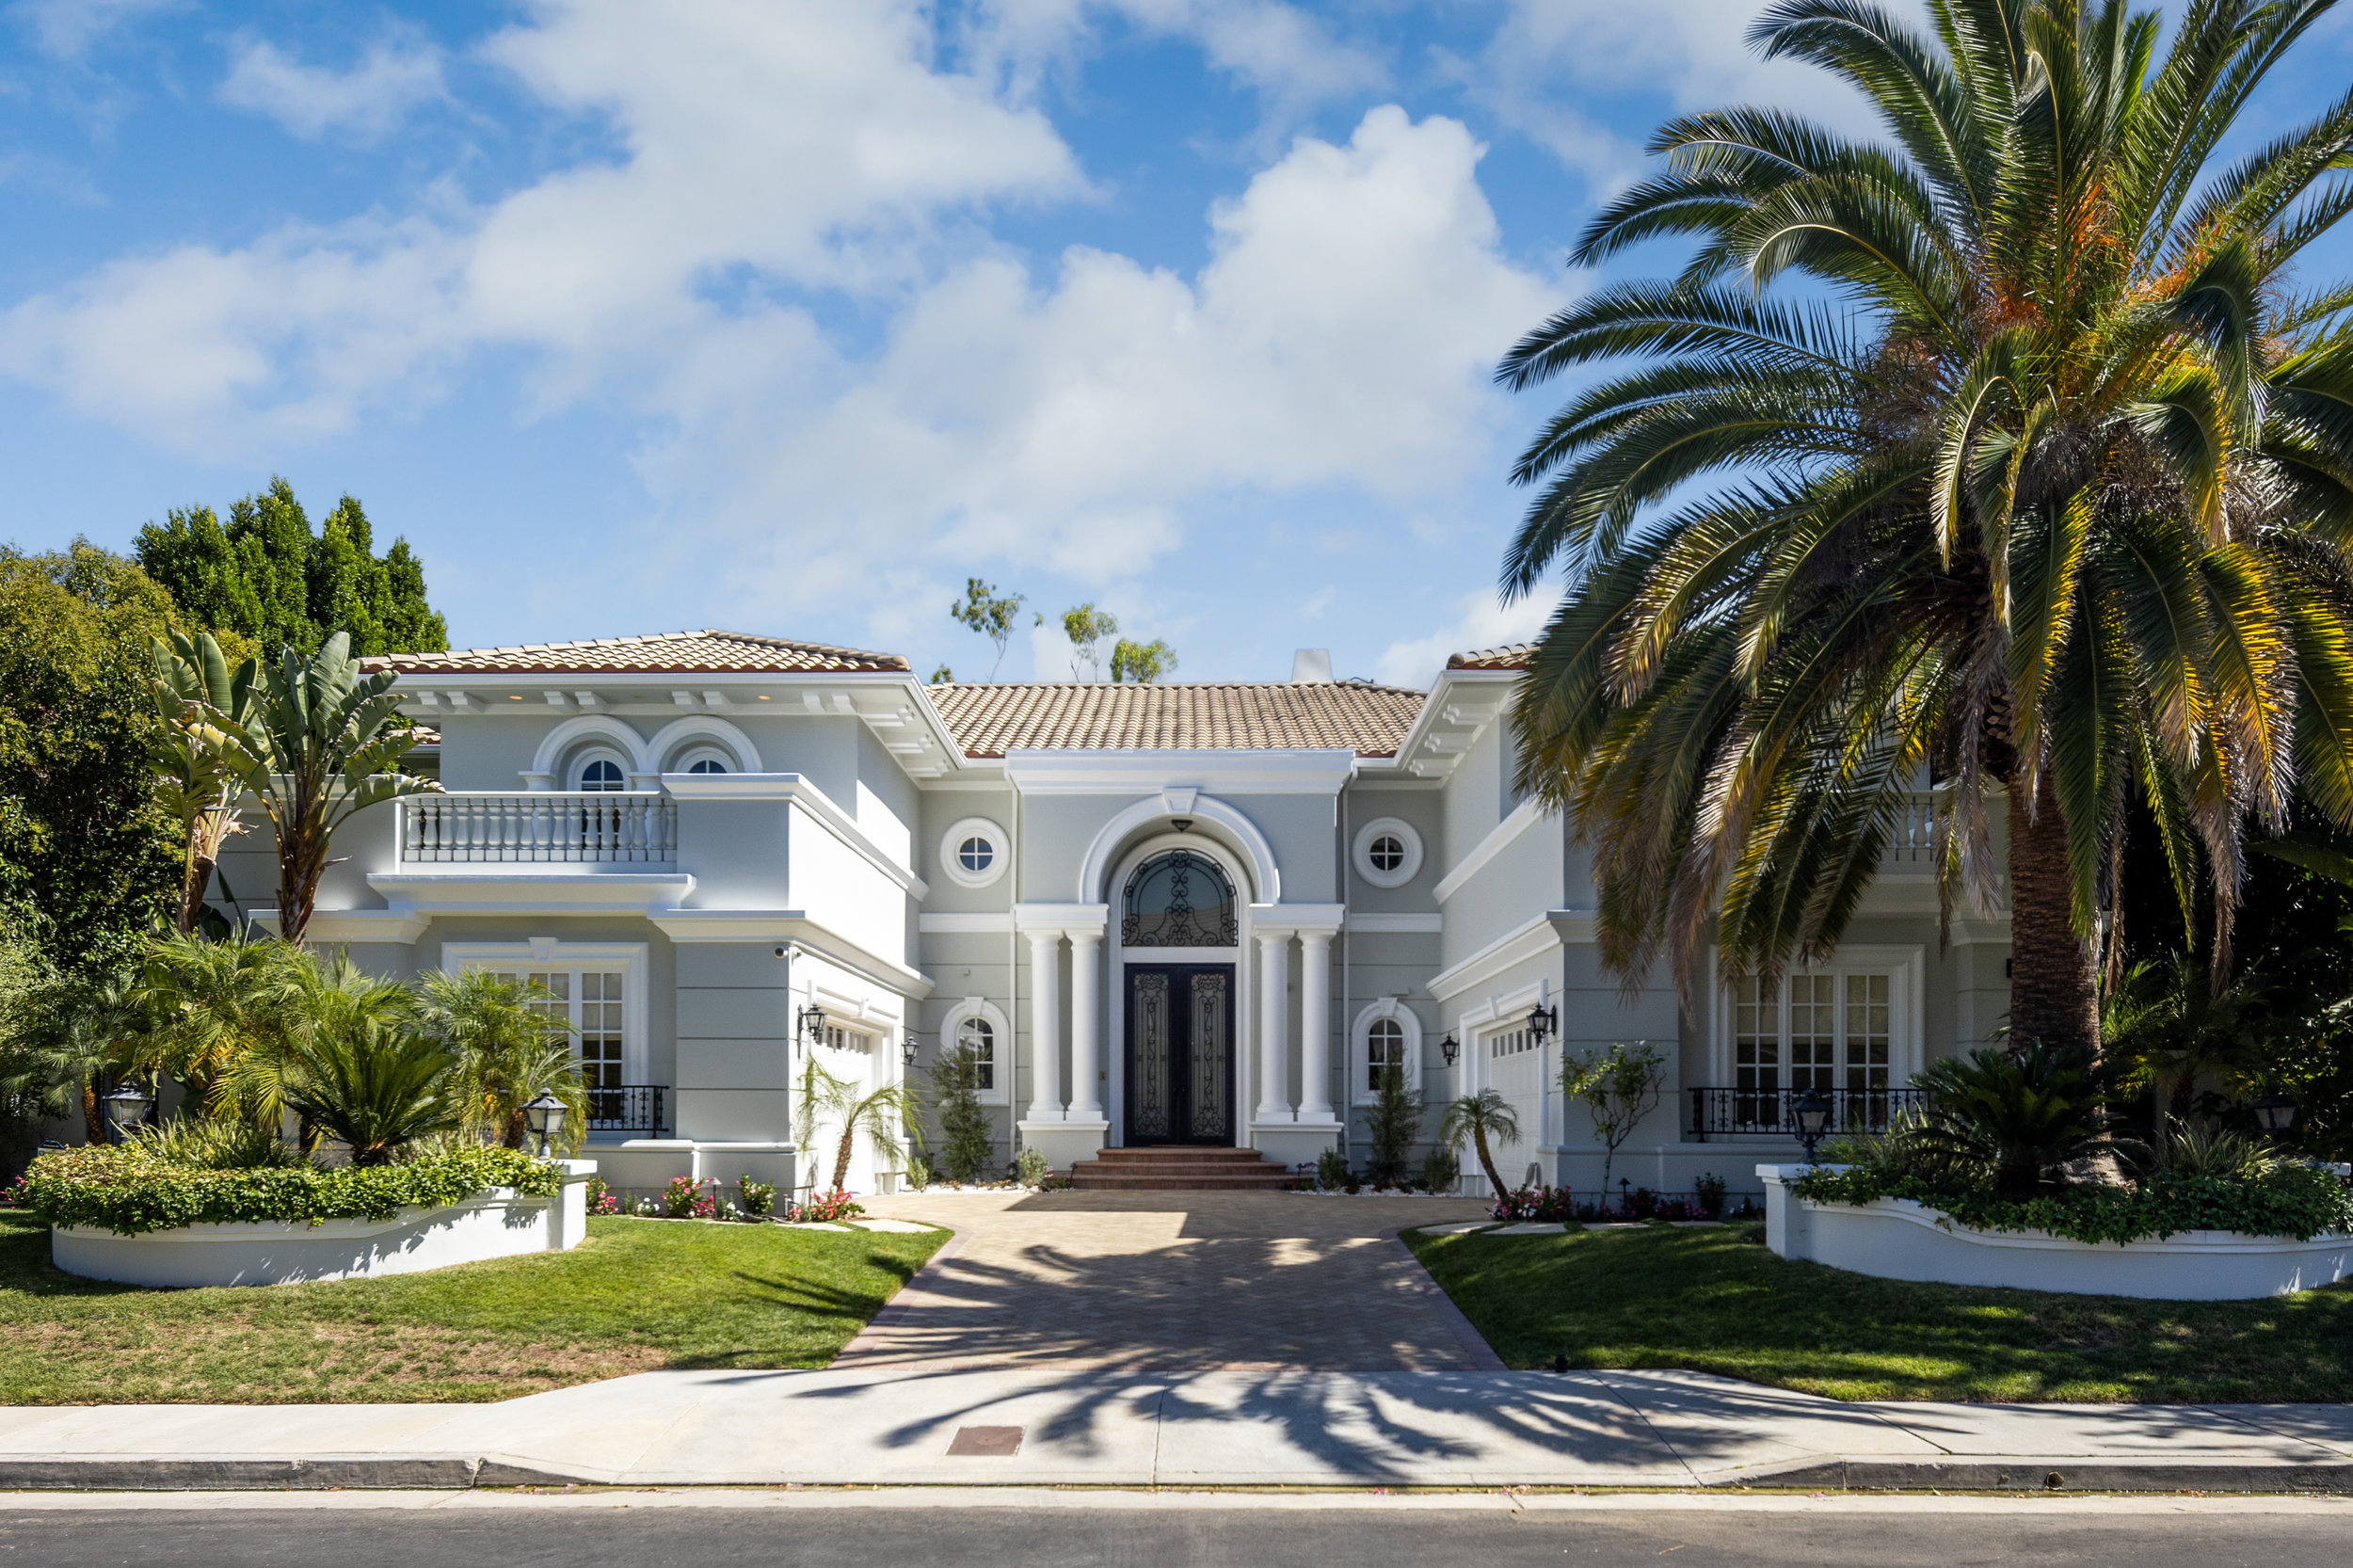 Built in 2000, the two-story home in Mulholland Park has seven bedrooms, seven bathrooms, a dramatic foyer with dual staircases and a two-story living room with a floor-to-ceiling fireplace. (Hilton & Hyland)